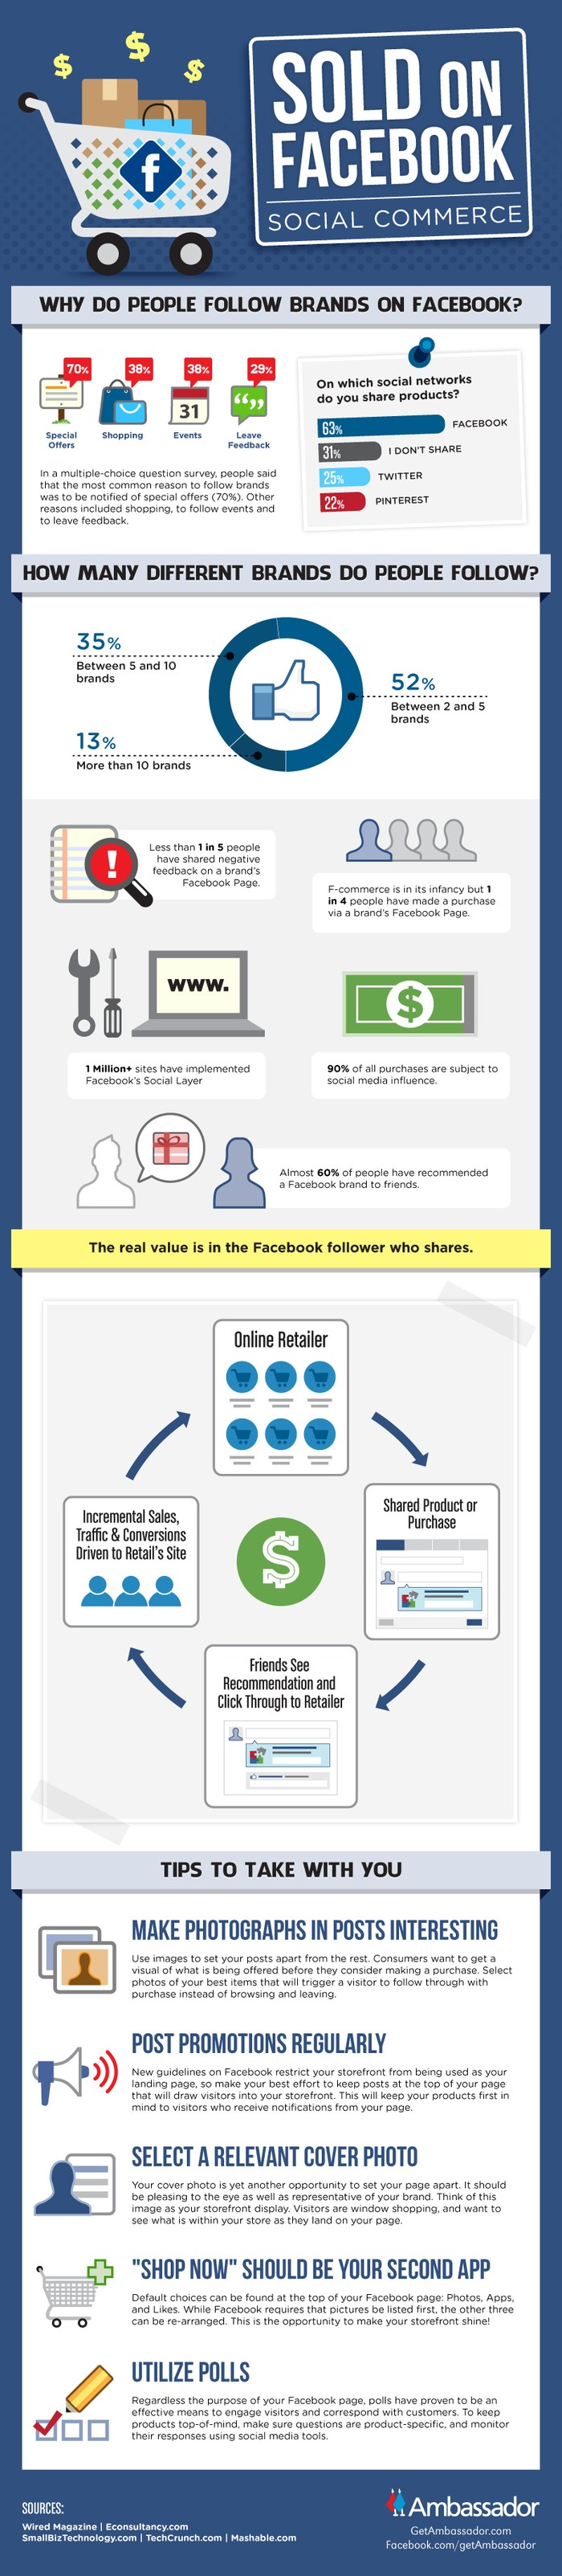 INFOGRAPHIC: What Makes People Sold On Brands On Facebook? | Business in a Social Media World | Scoop.it